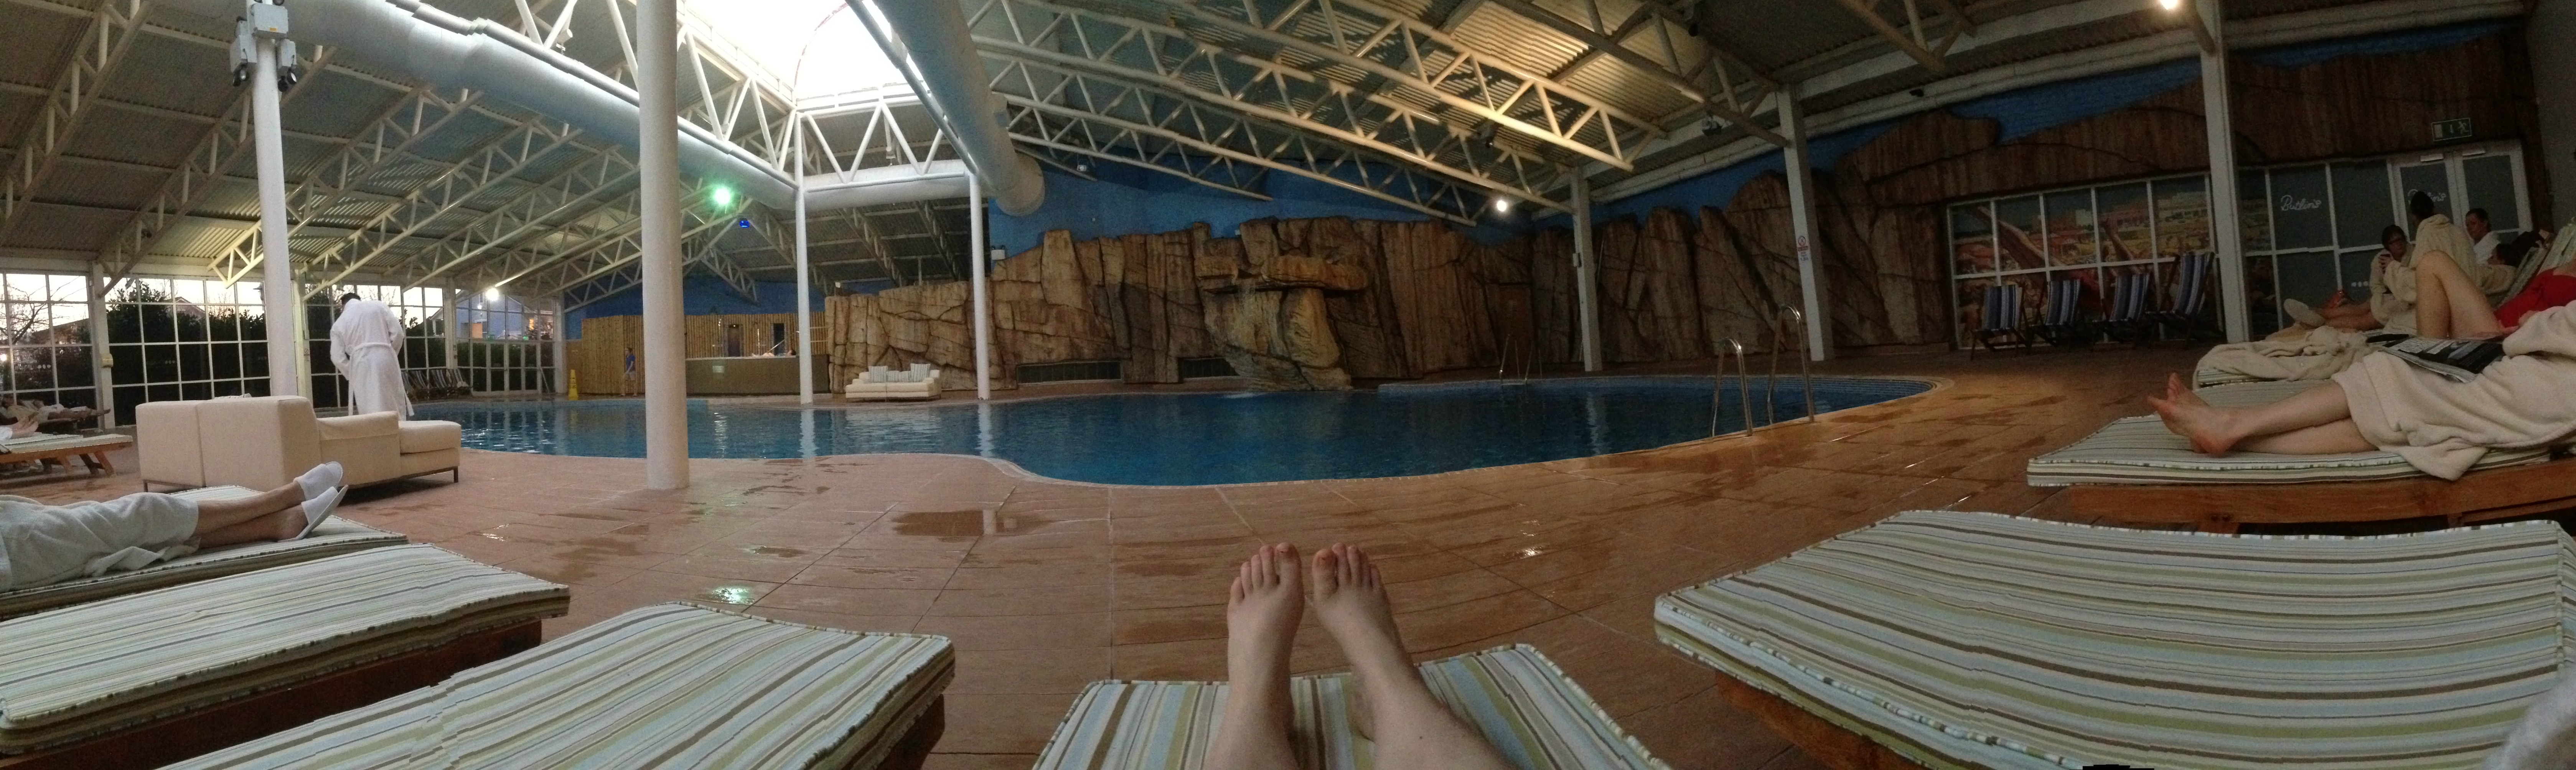 The Spa At Butlin 39 S Skegness Kids Days Out Reviews